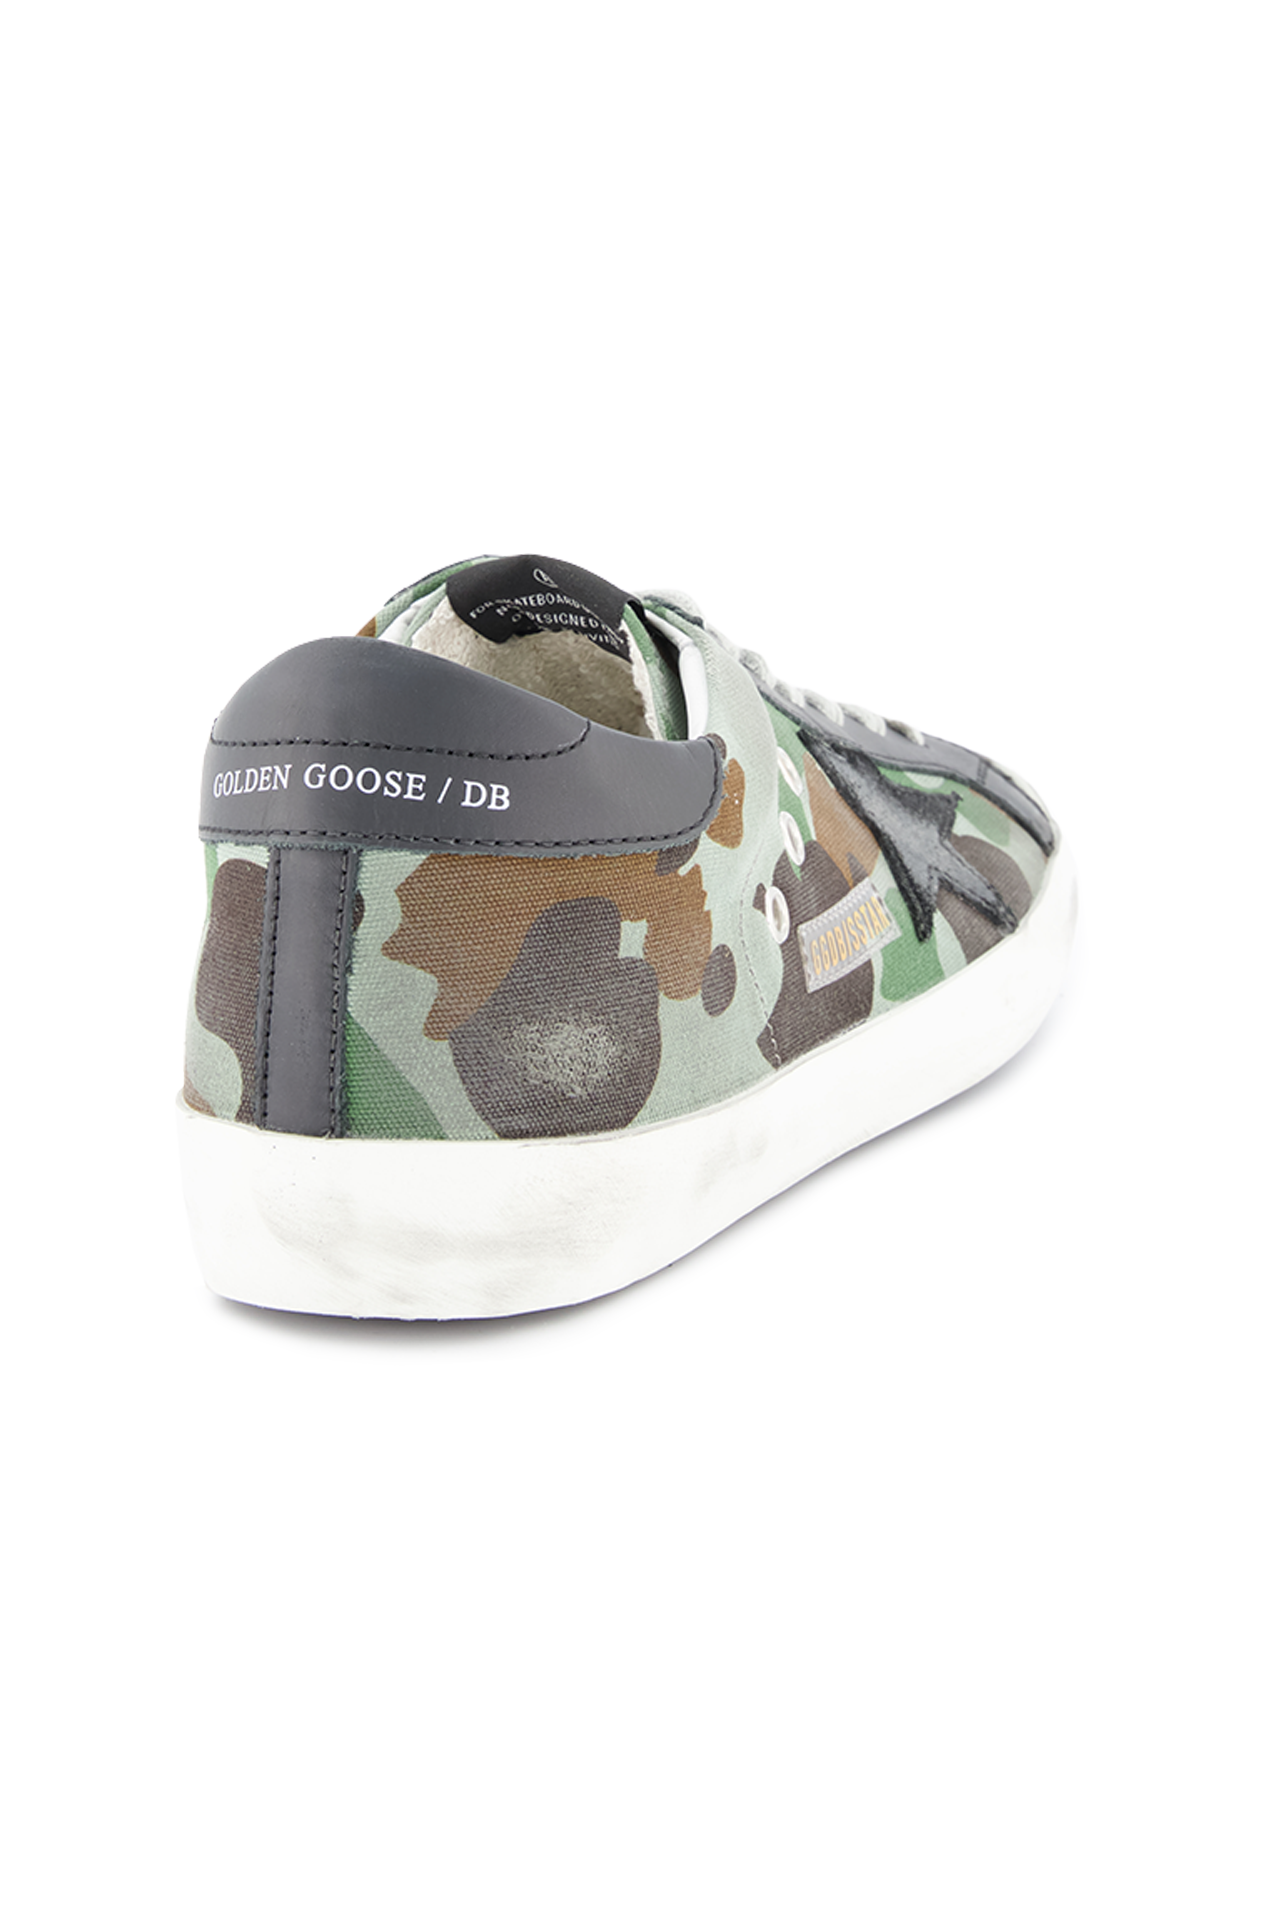 Back angled view image of Golden Goose Men's Superstar Low Top Sneakers Camouflage